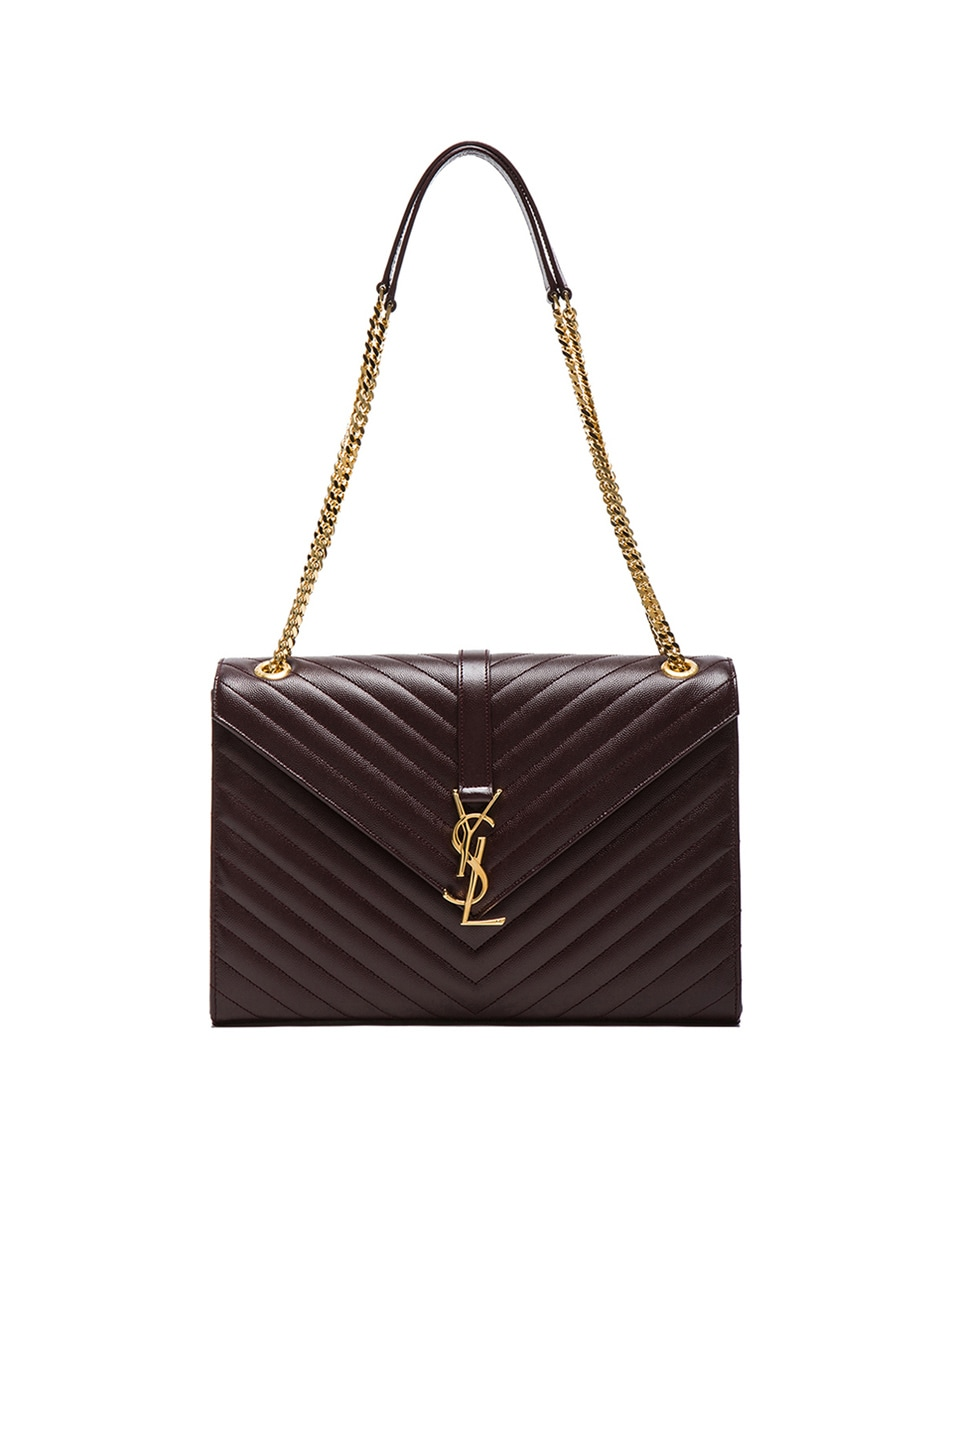 Image 1 of Saint Laurent Large Monogramme Envelope Chain Bag in Bordeaux